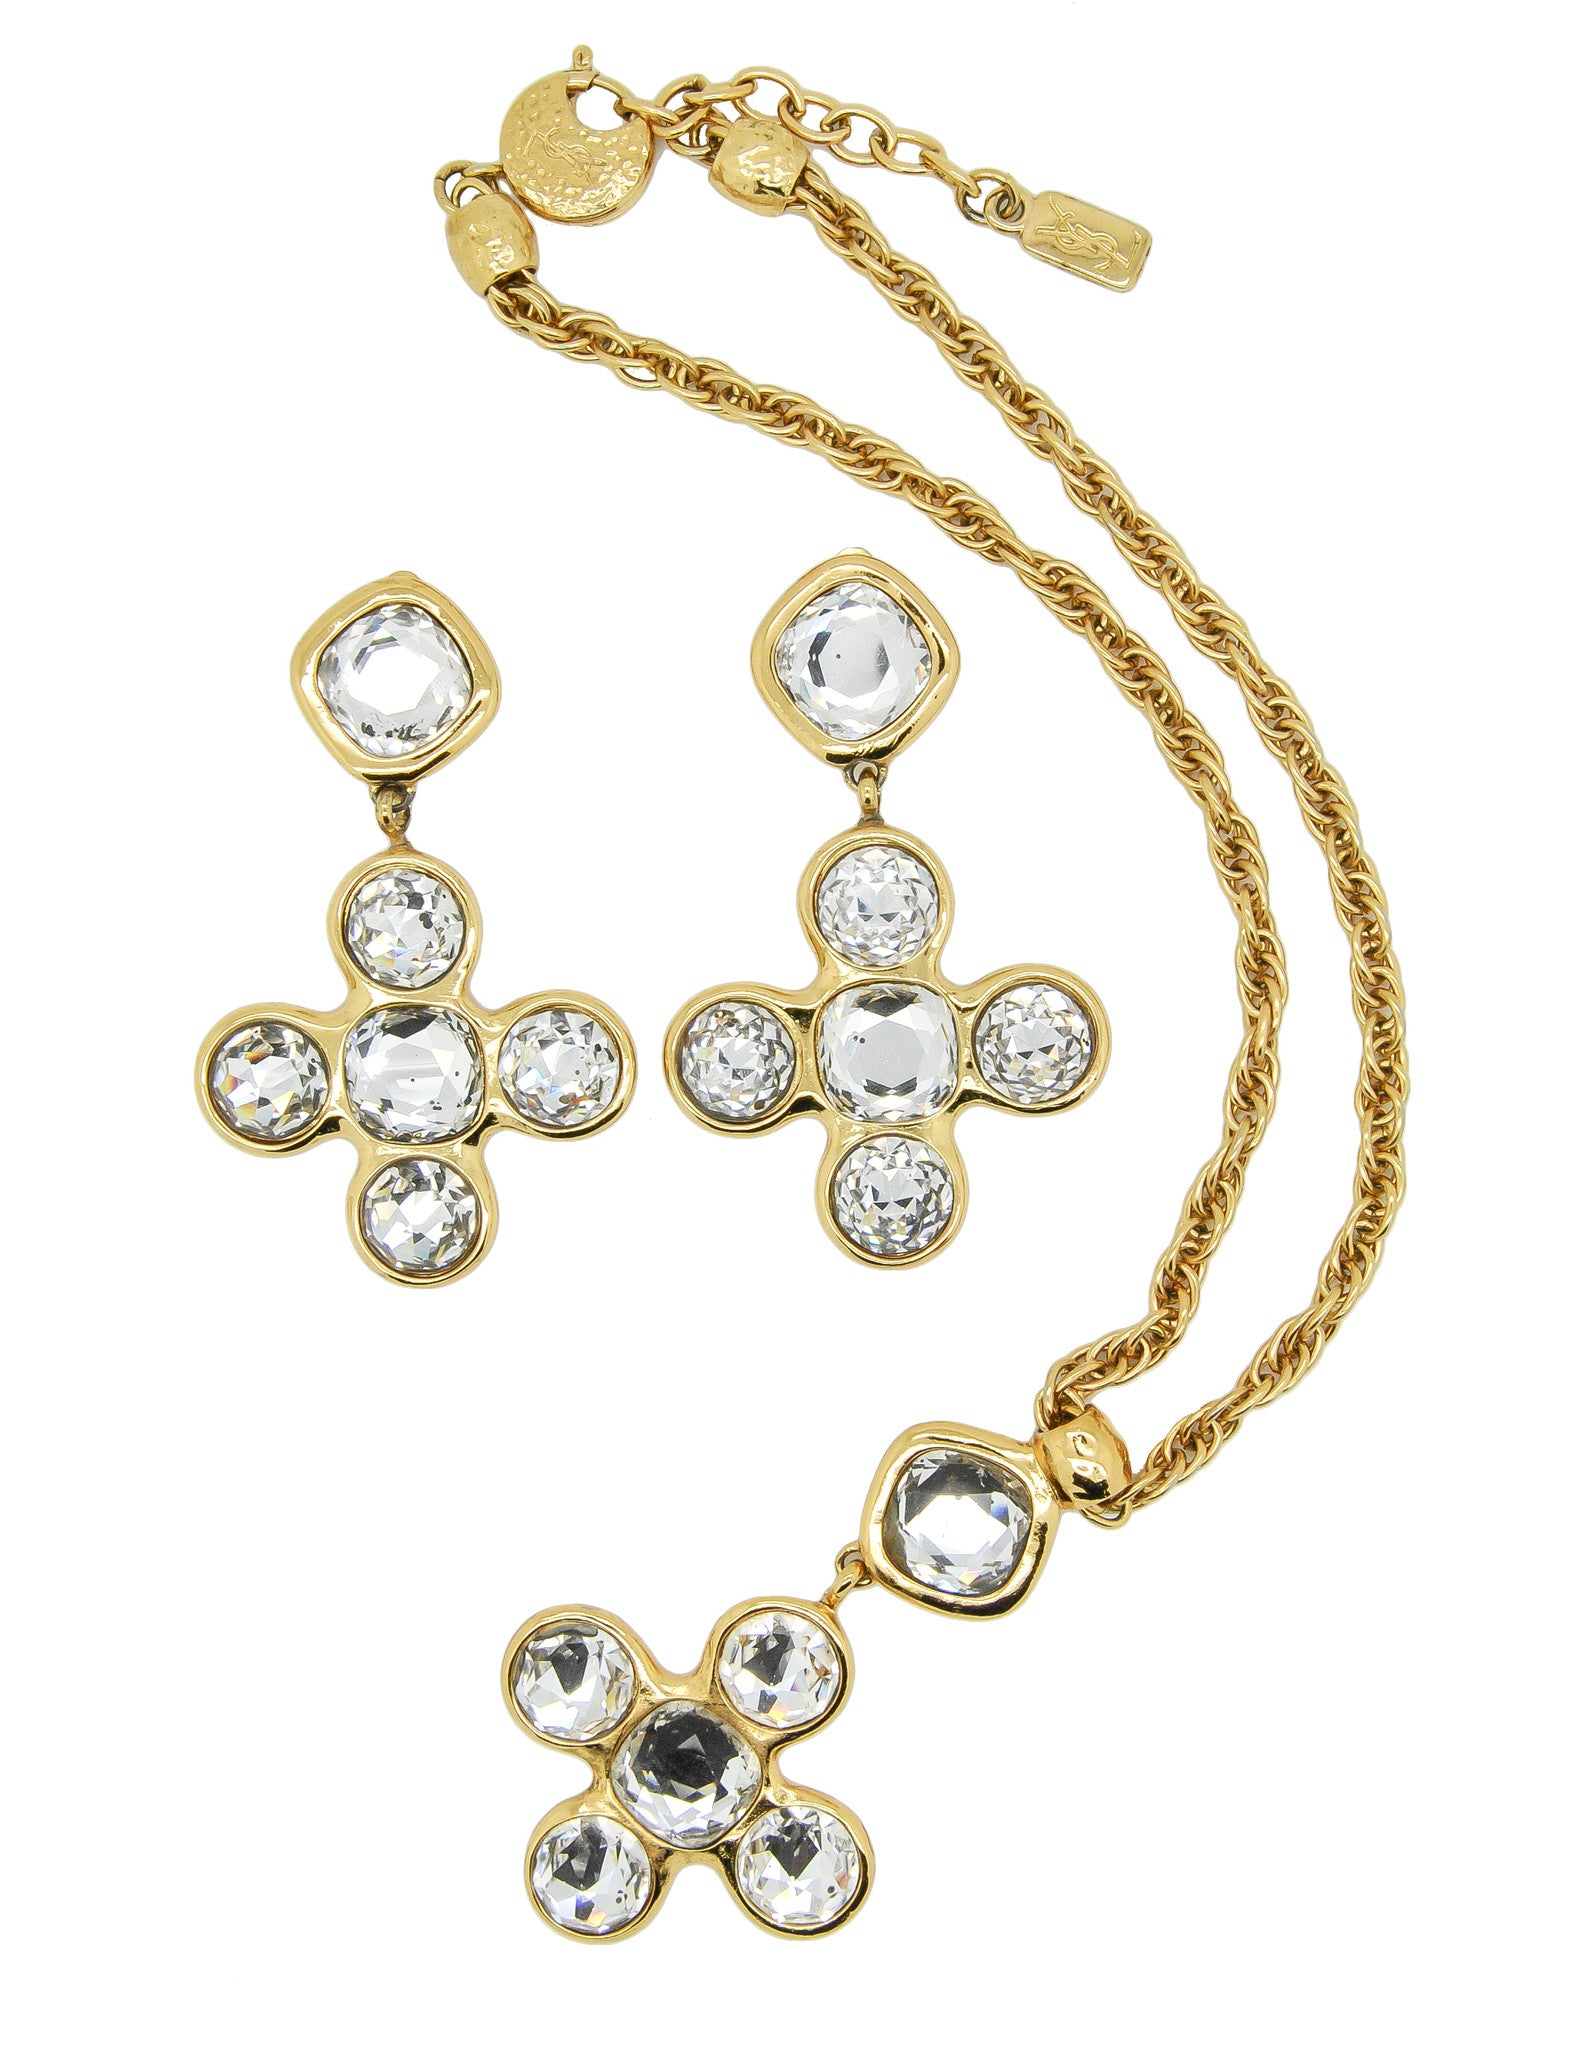 YSL Vintage Robert Goossens Crystal Byzantine Cross Necklace and Earrings Set - Amarcord Vintage Fashion  - 1